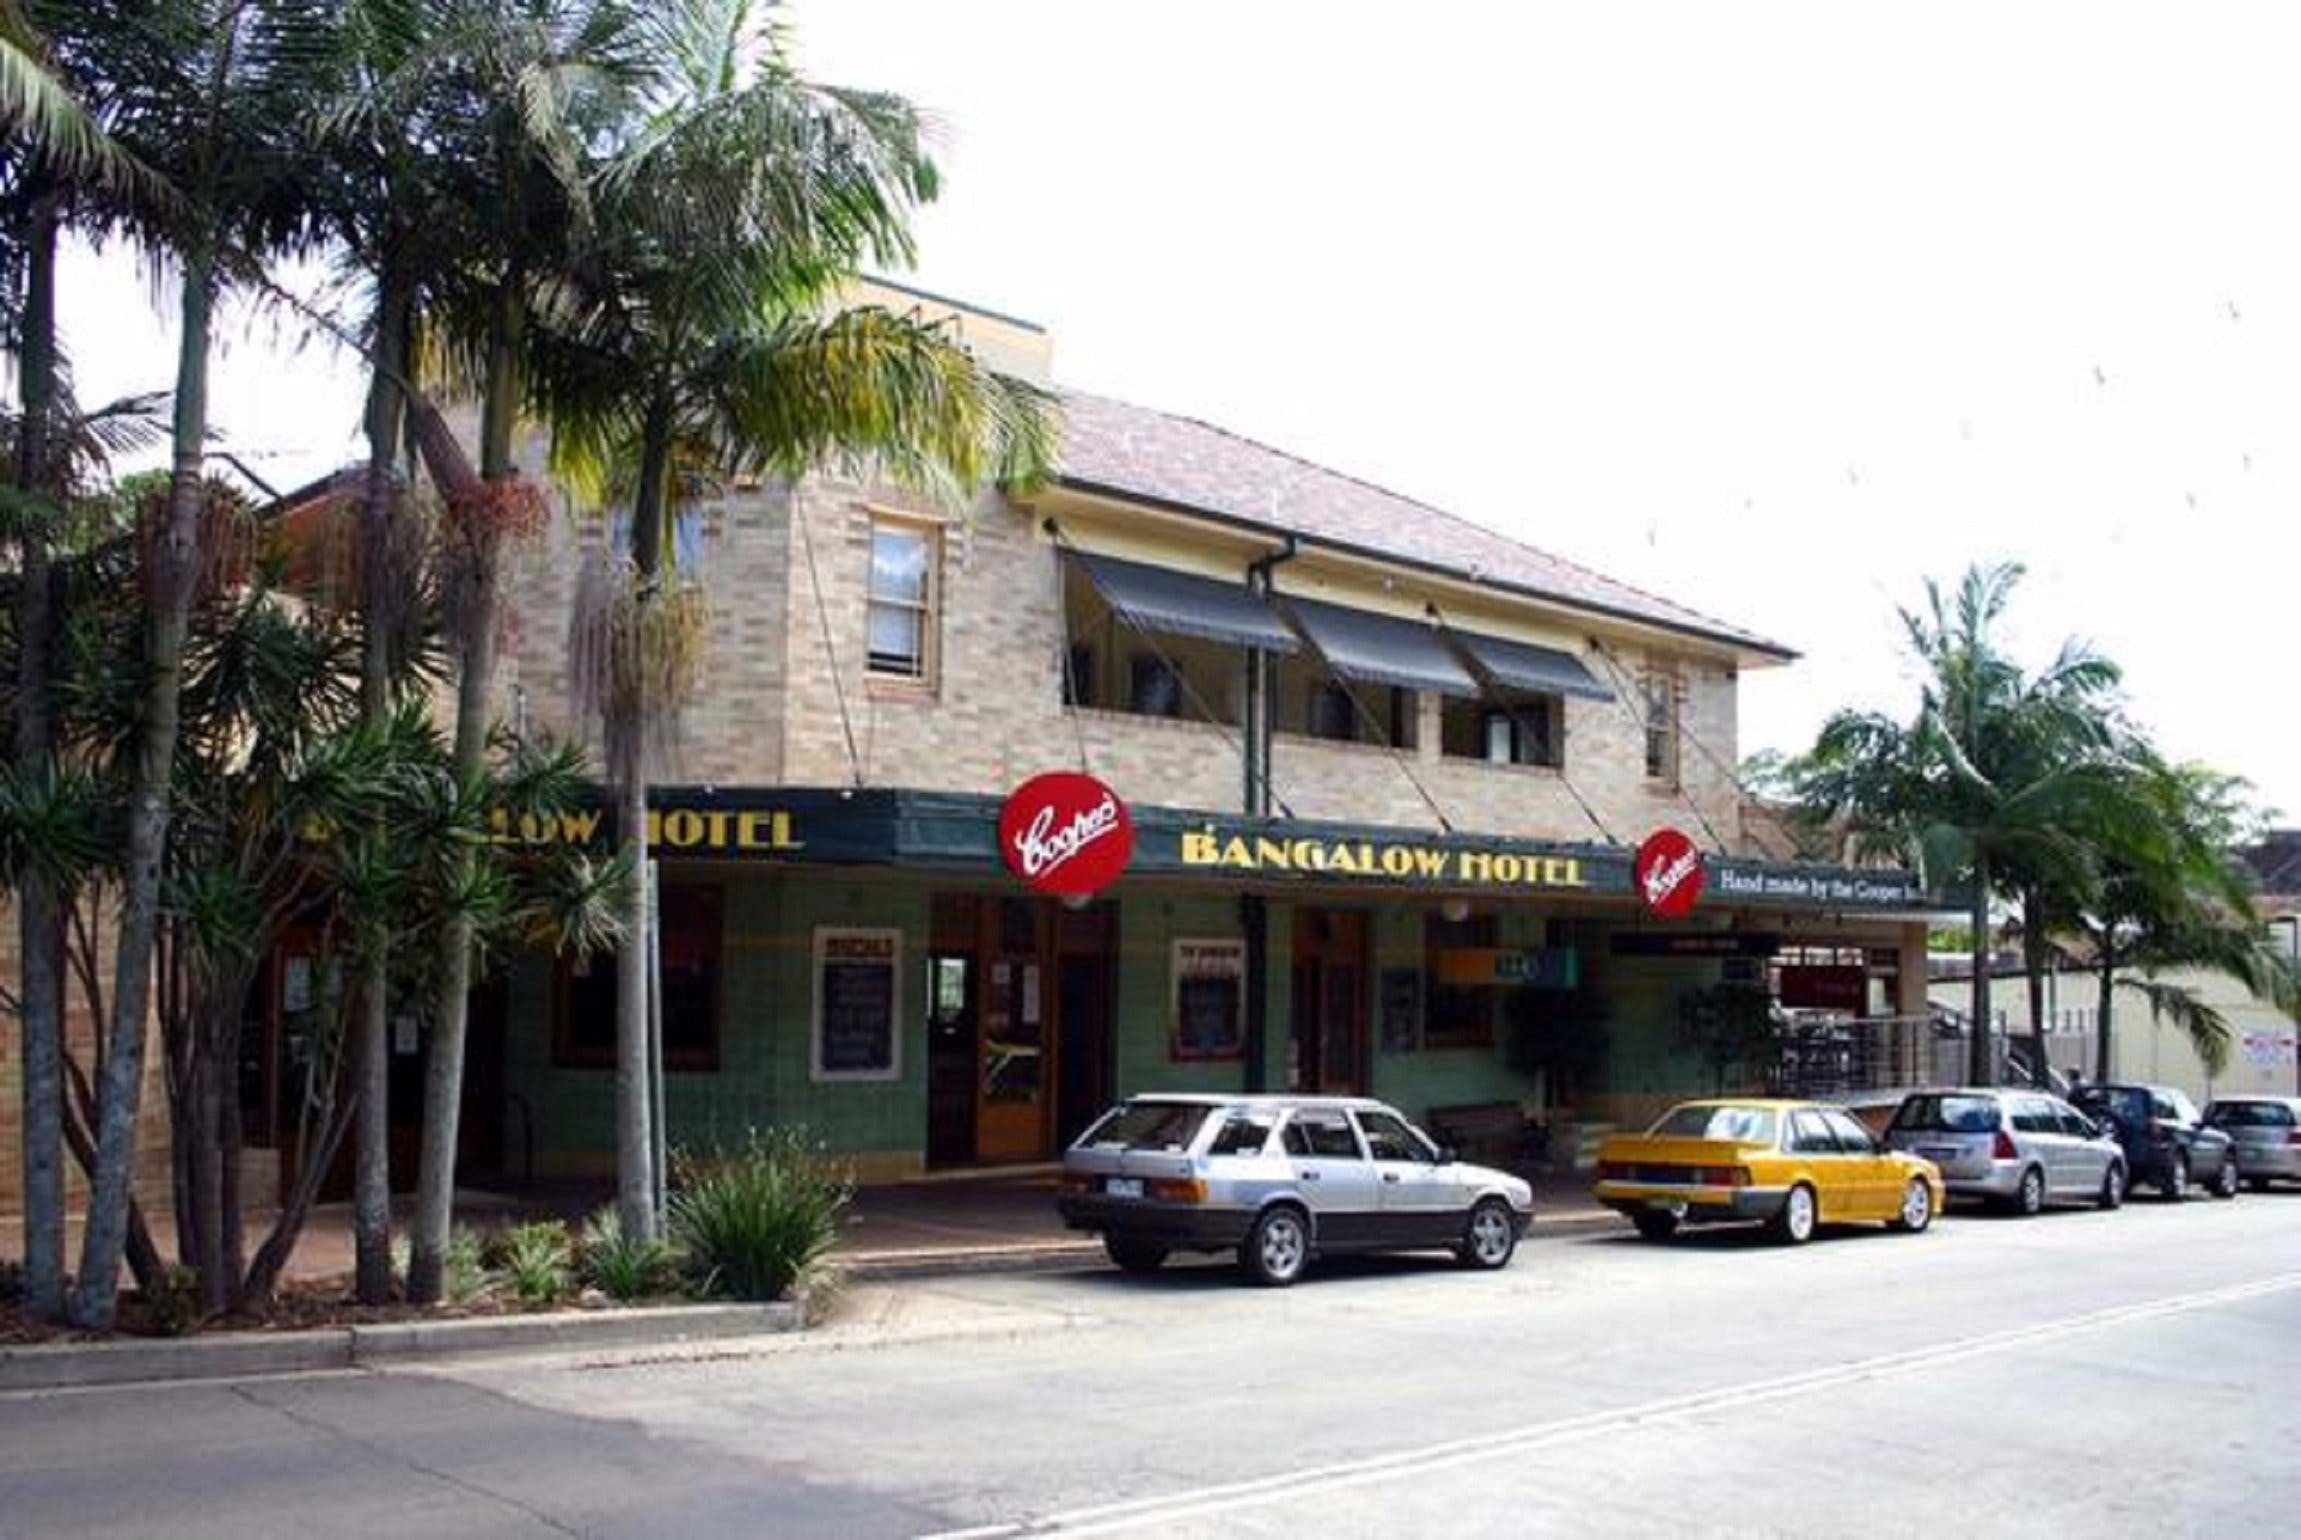 Bangalow Hotel - Food Delivery Shop